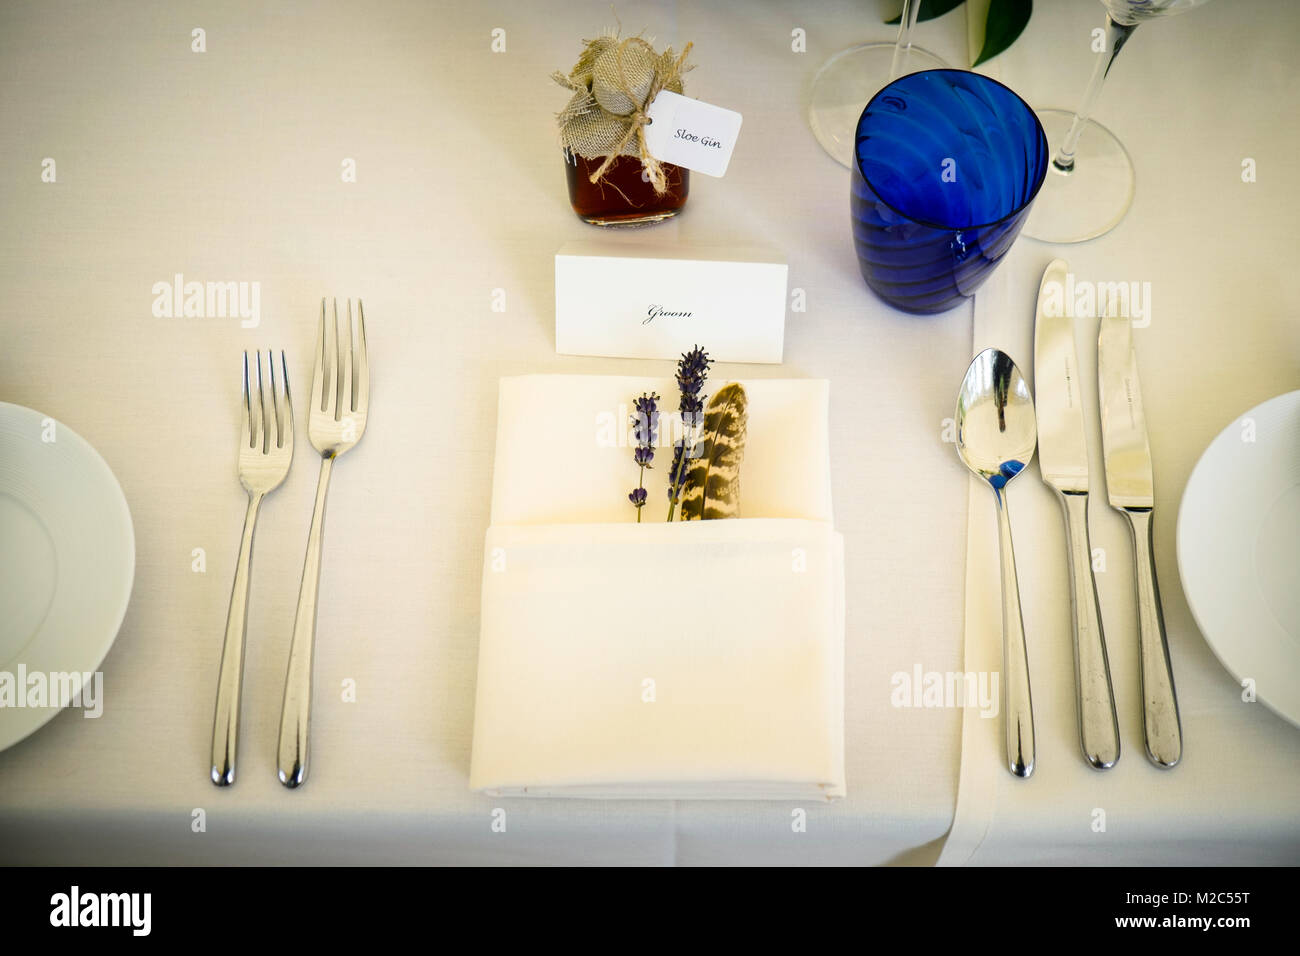 Napkin place setting on table, with place card and wedding favour ...